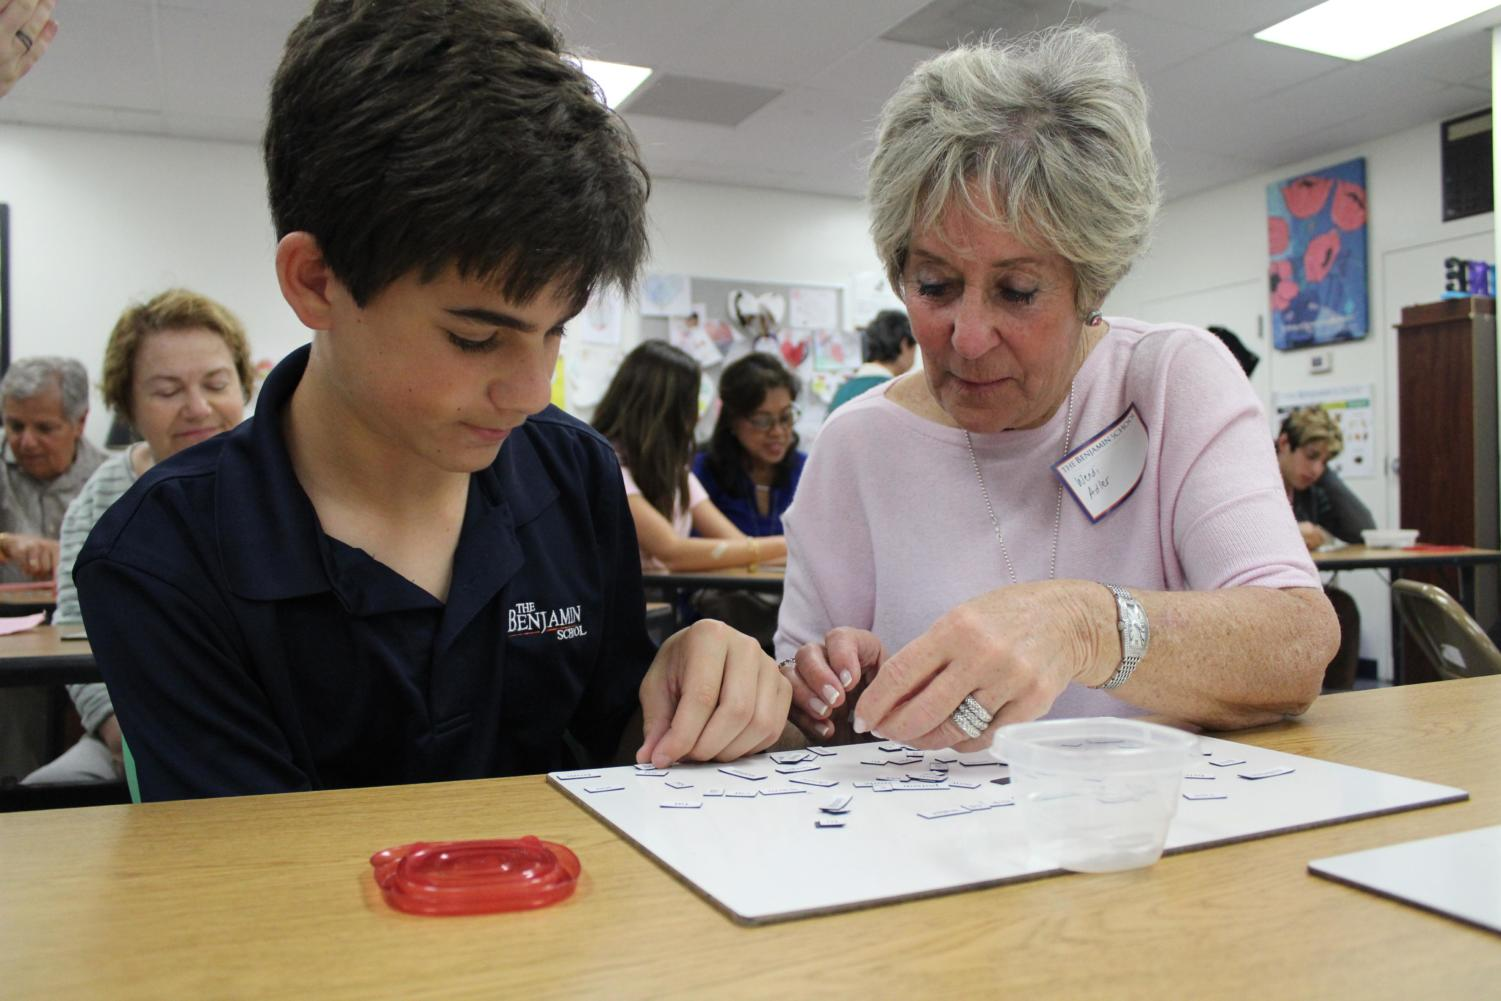 Eighth grader Jake Zur and his grandmother, Wendi Adler, create a poem with magnetic words in Mrs. Devine's room on Grandest Friends' Day.